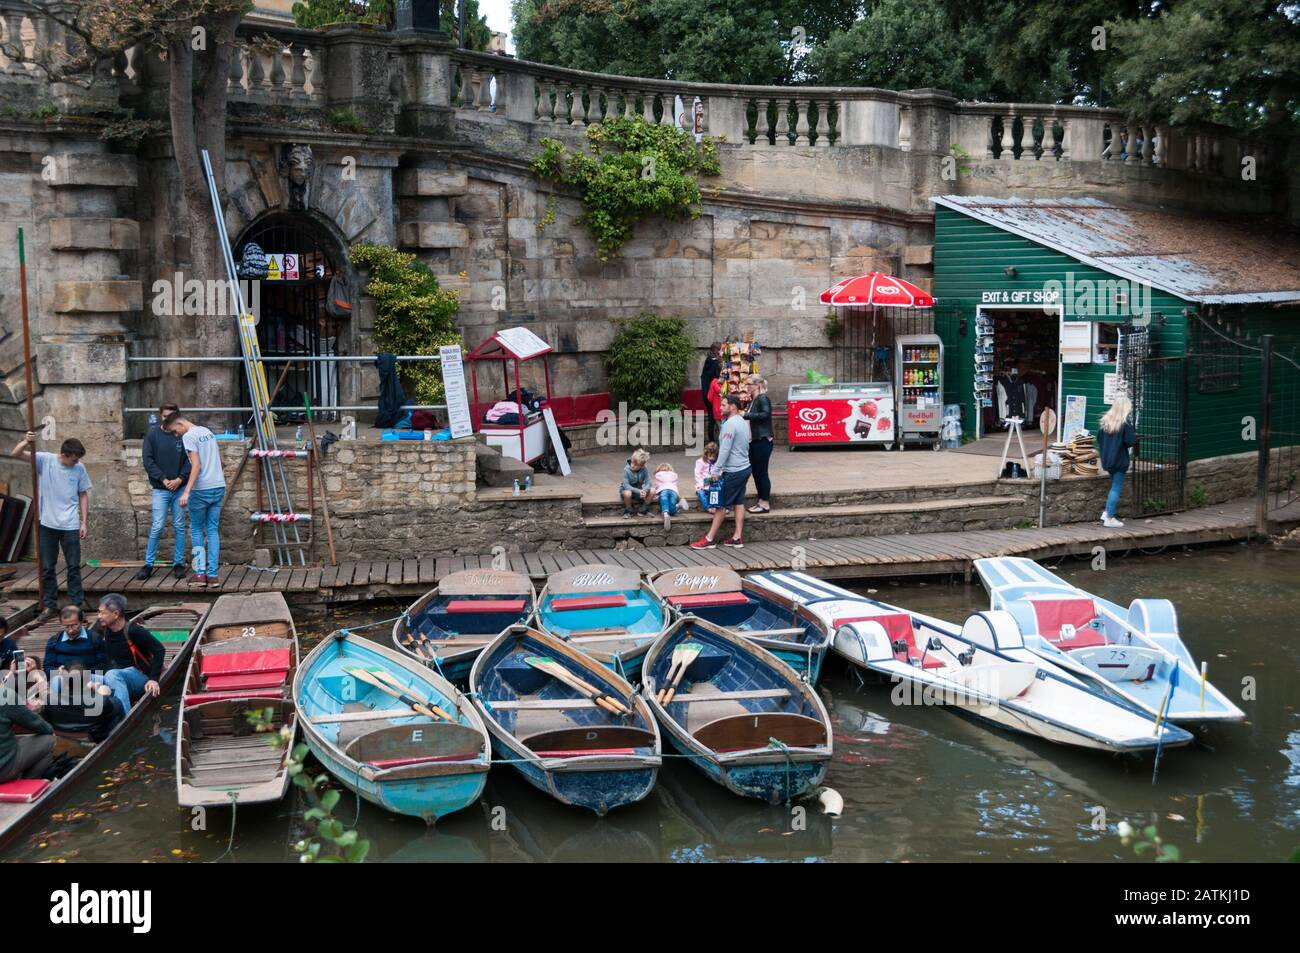 Punting on the river Cherwell, Oxford, United Kingdom Stock Photo